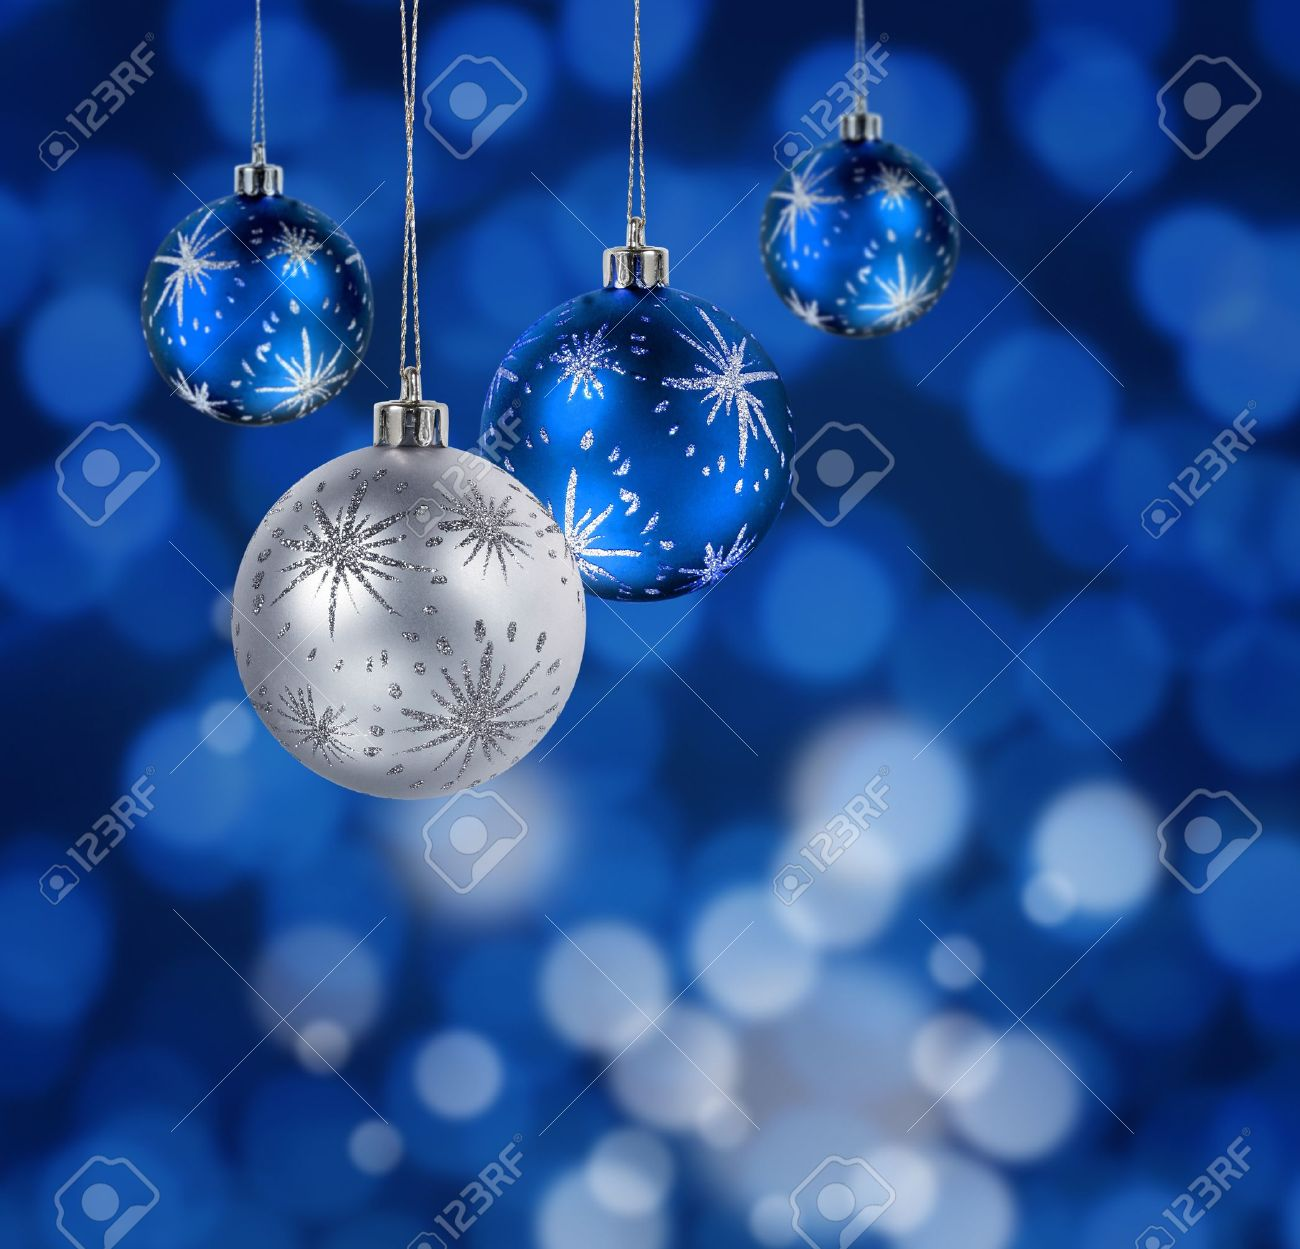 Blue And Silver Christmas Balls Hanging Against Blue Light Spots ...